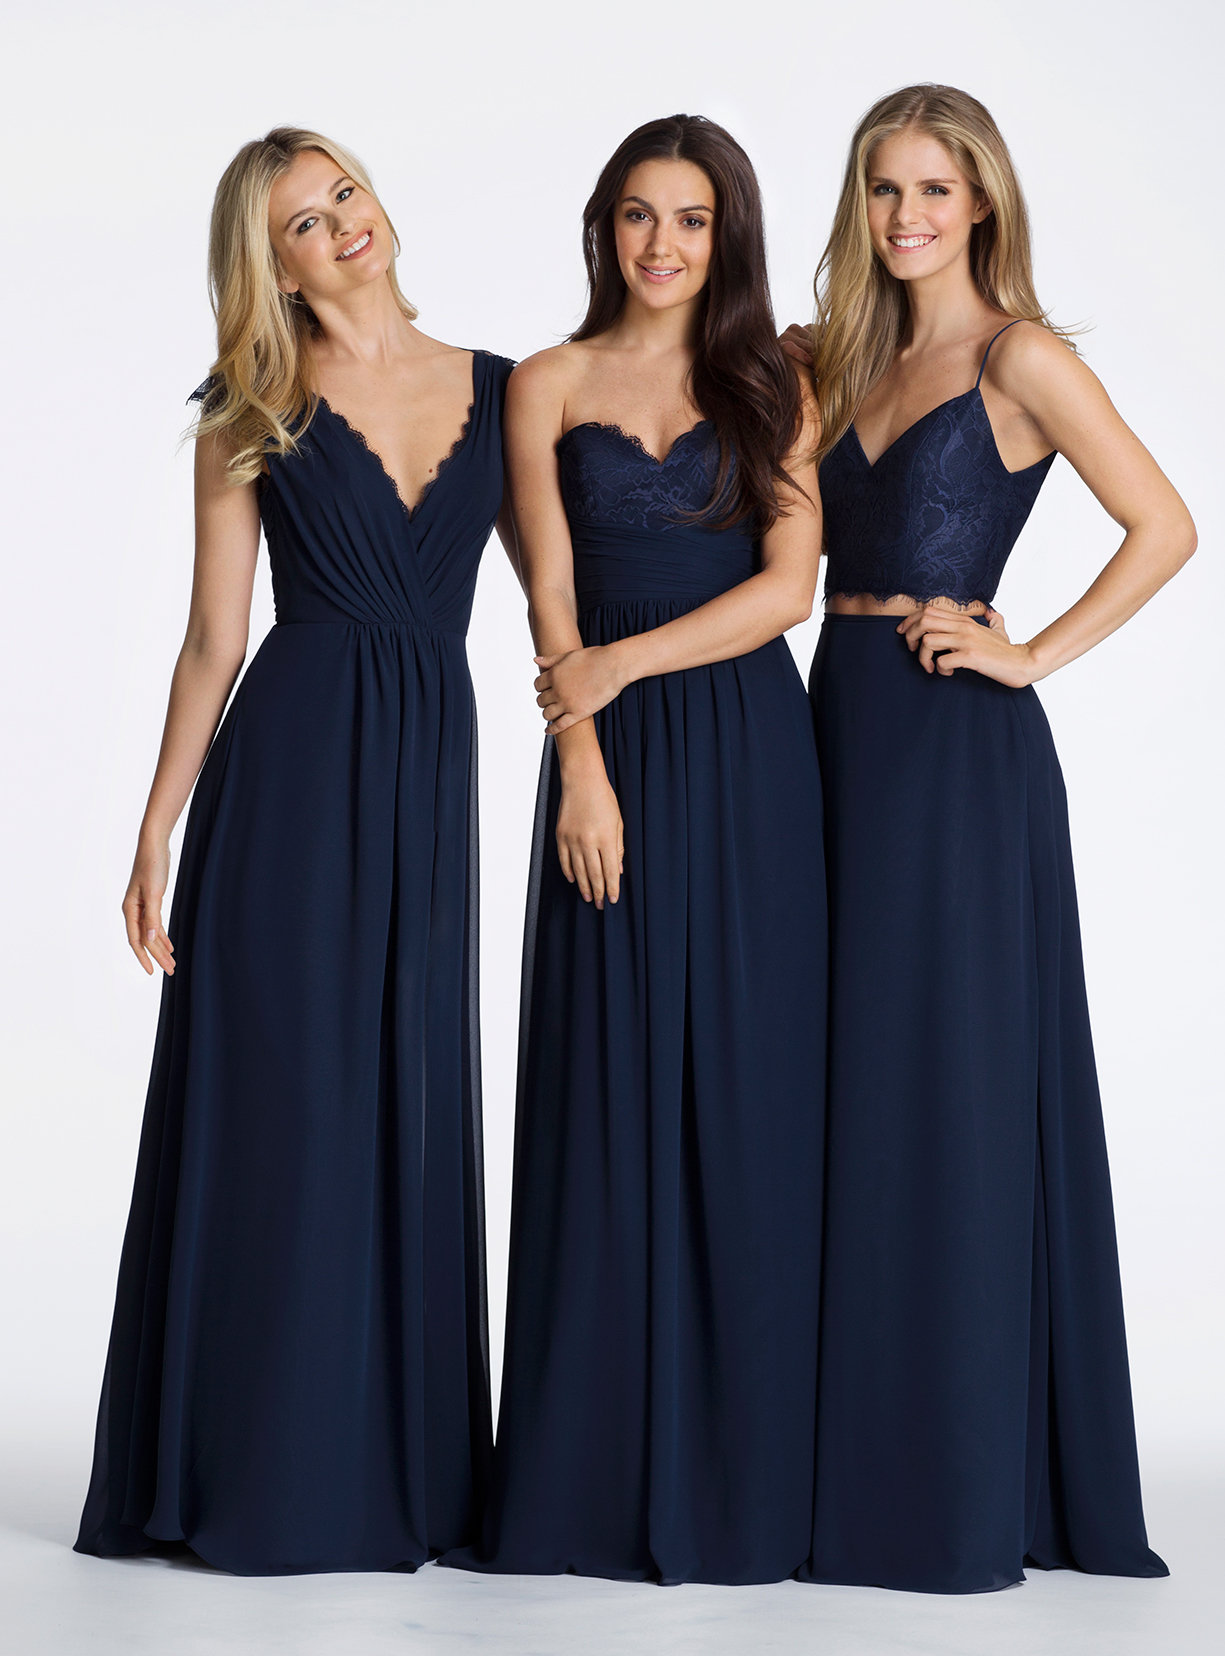 Bridesmaids special occasion dresses and bridal party gowns by style 5600 group view ombrellifo Gallery